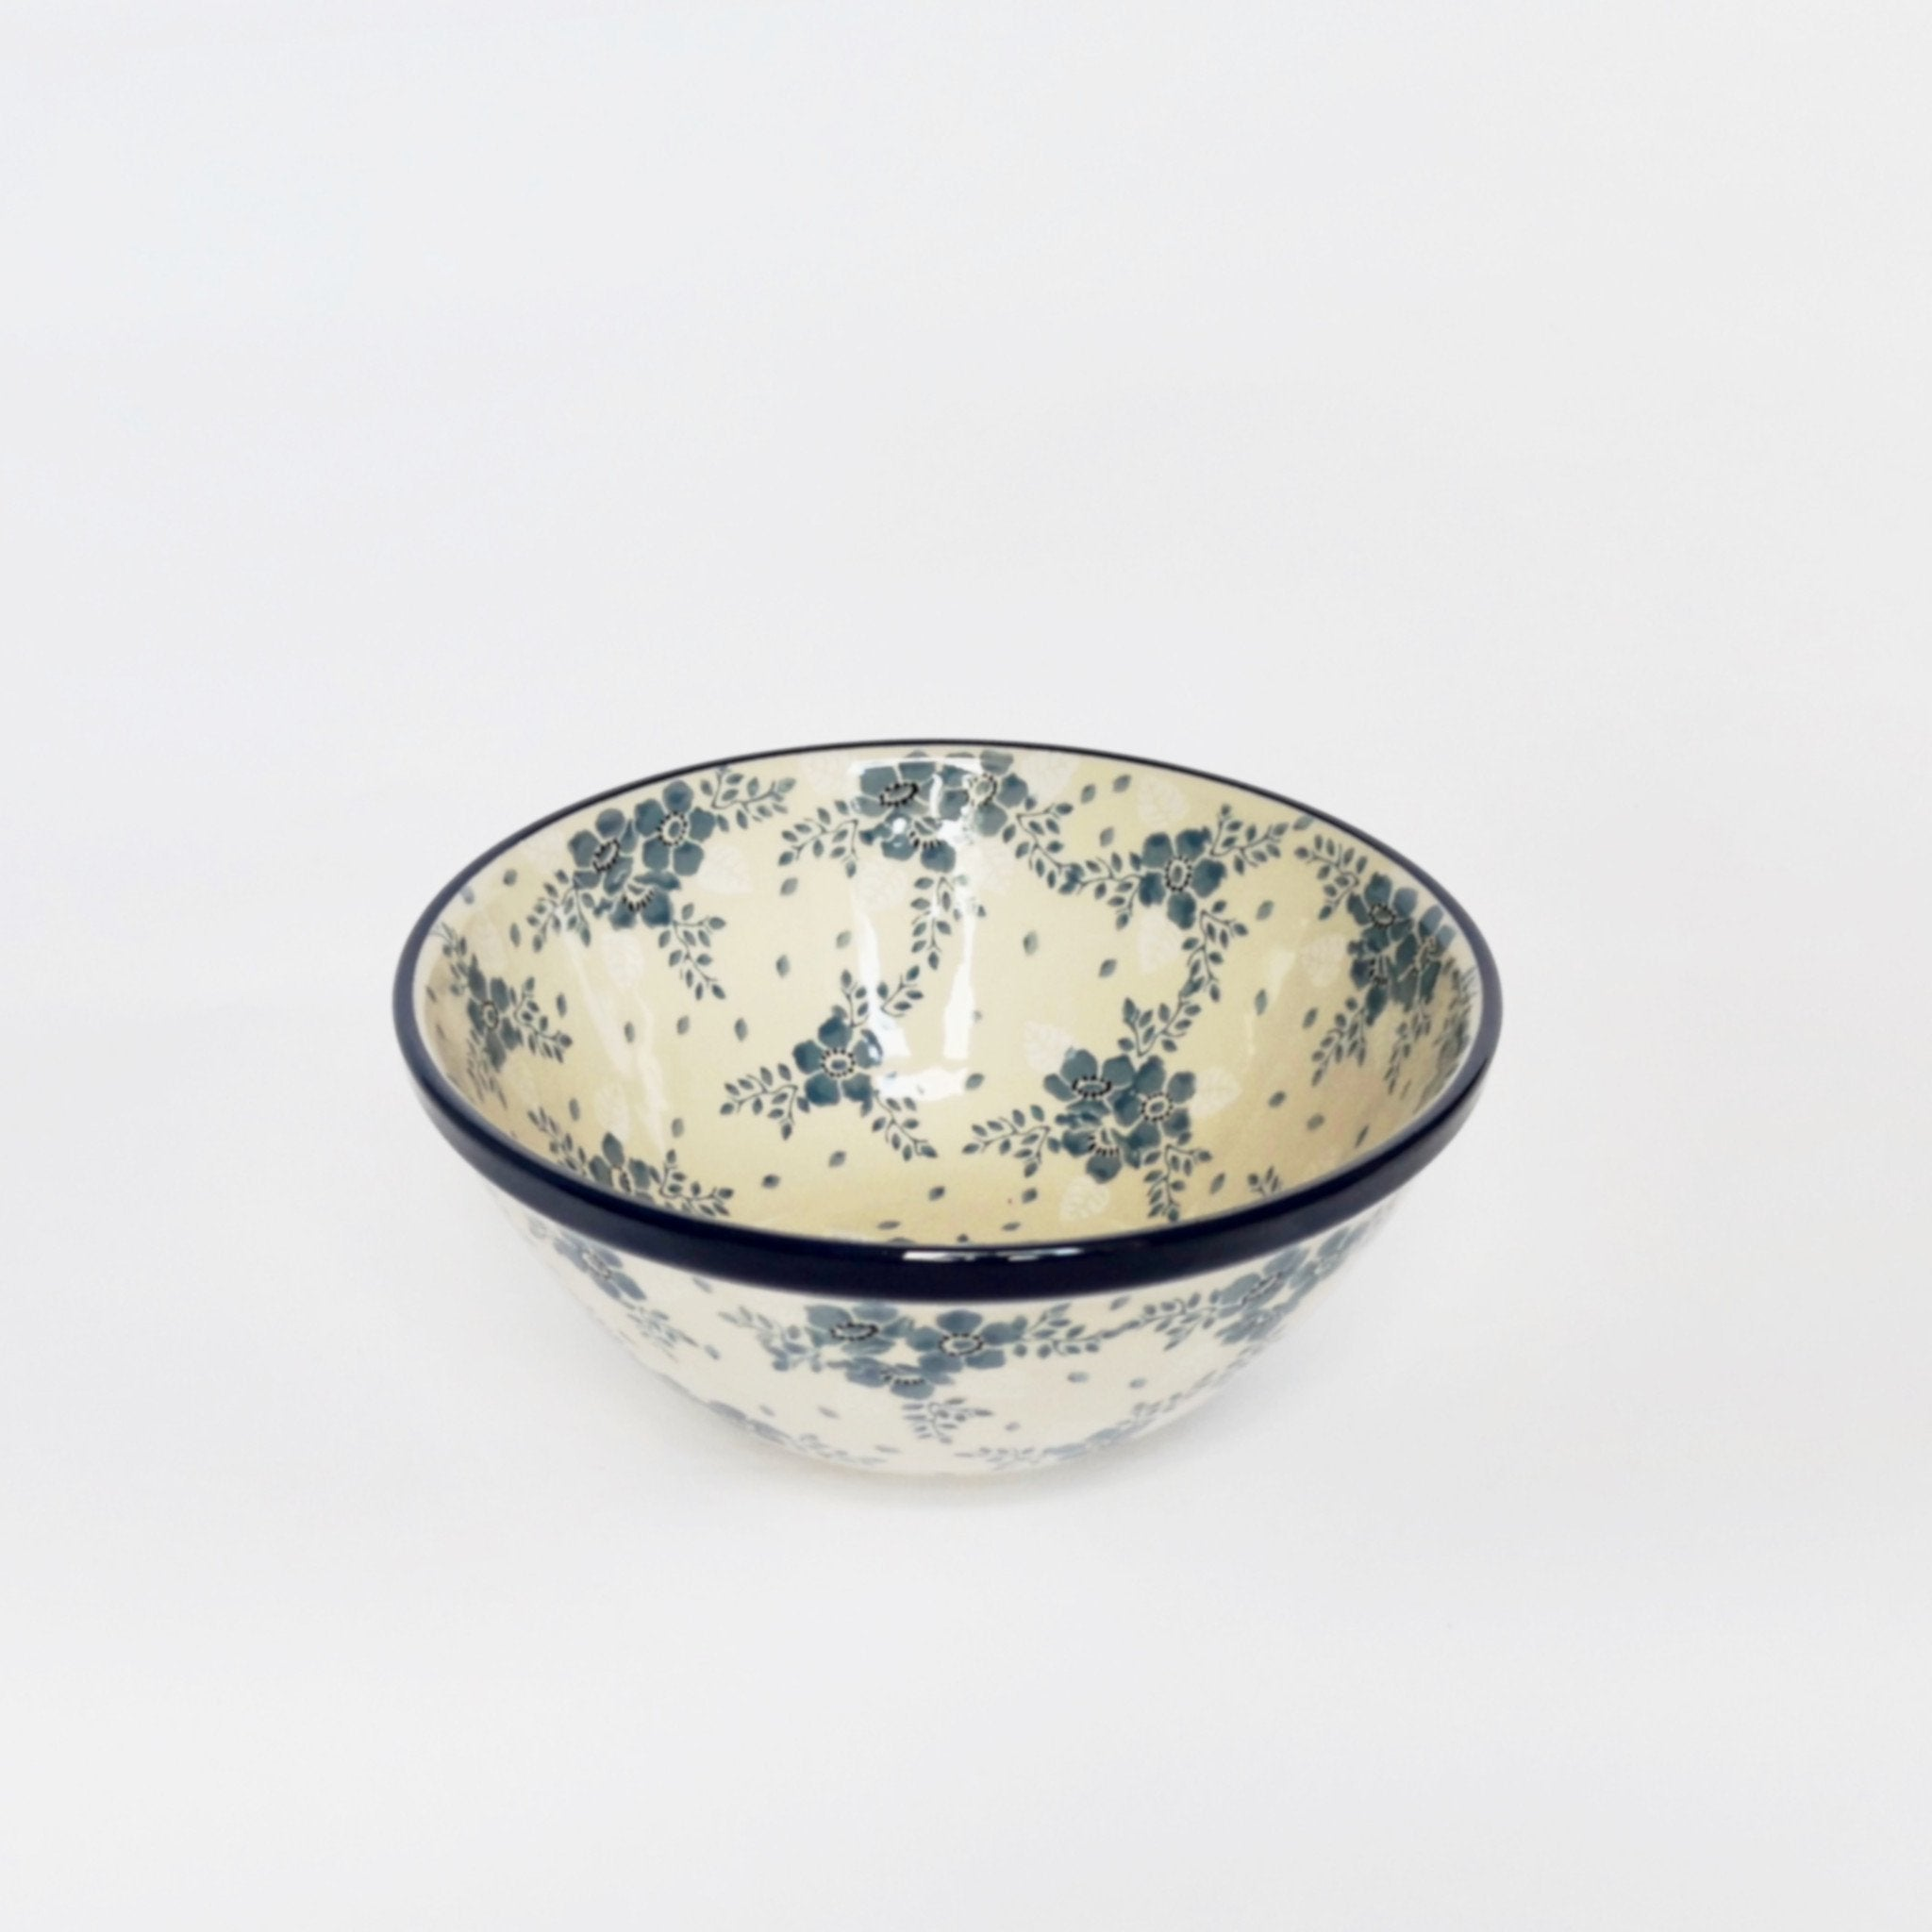 Small Serving Bowl in Emilia